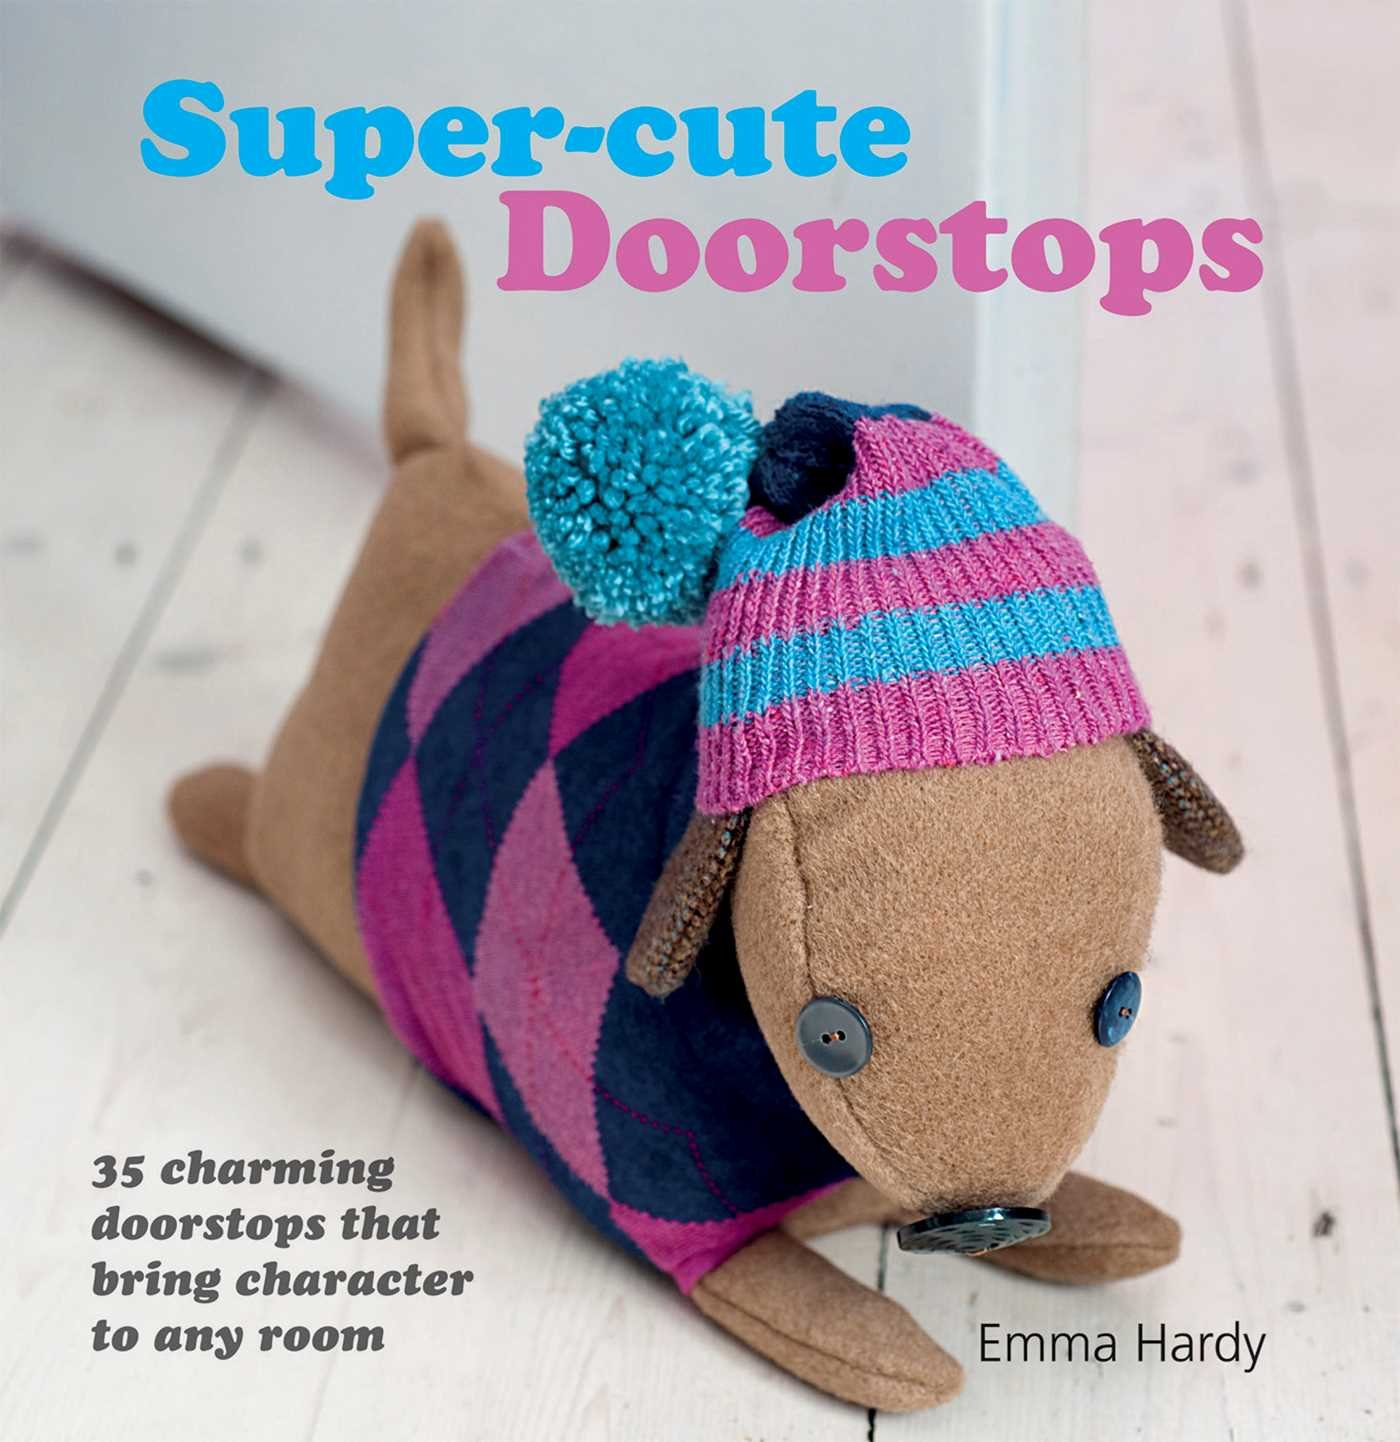 stylist and luxury decorative door stoppers. Super cute Doorstops  35 Charming that Bring Character to Any Rom Emma Hardy 0499991610891 Amazon com Books